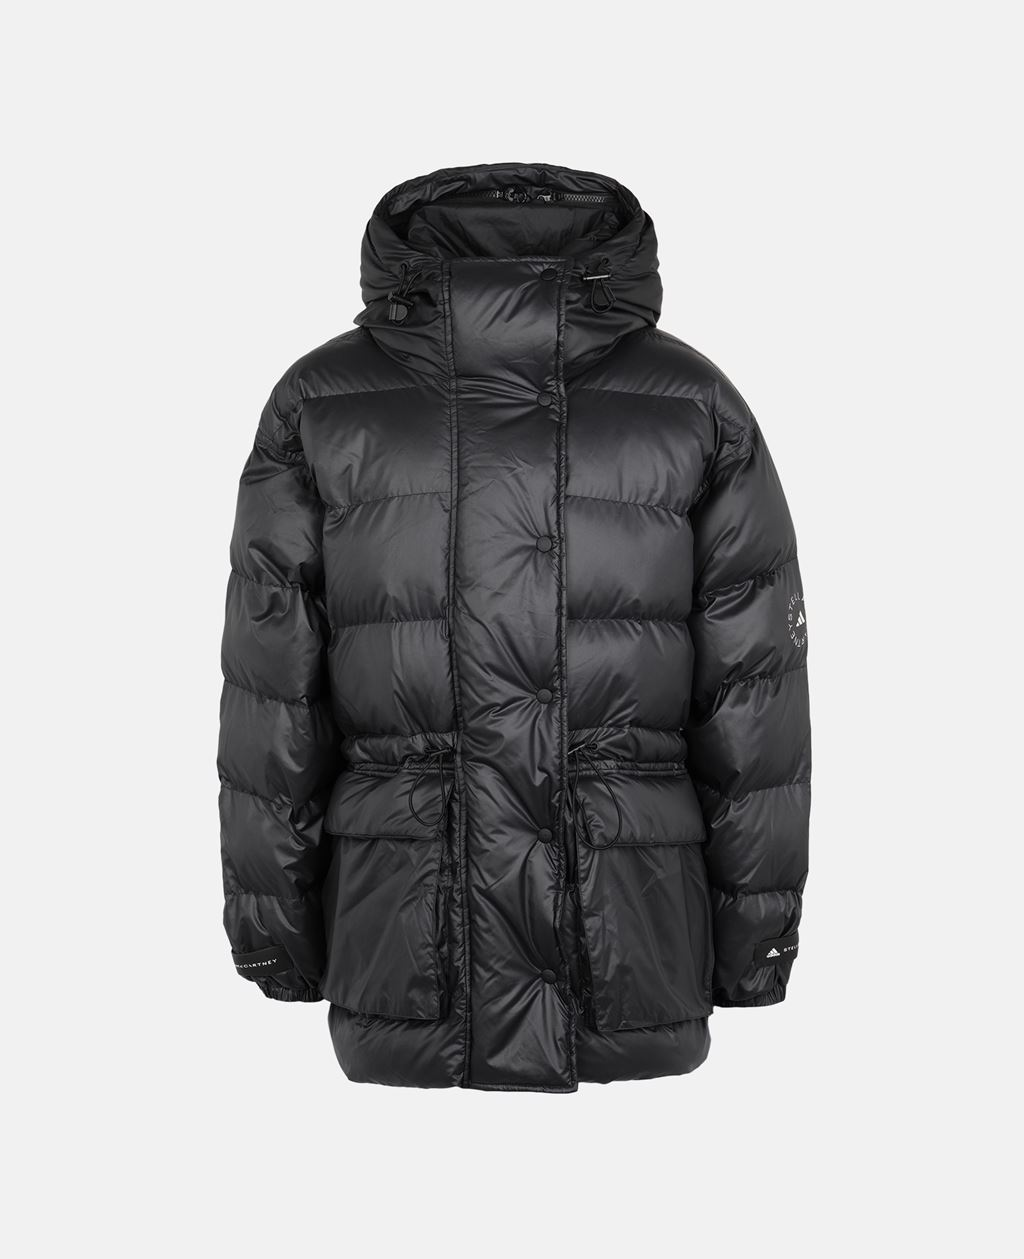 Stella McCartney Black 2-in-1 Mid-Length Padded Jacket